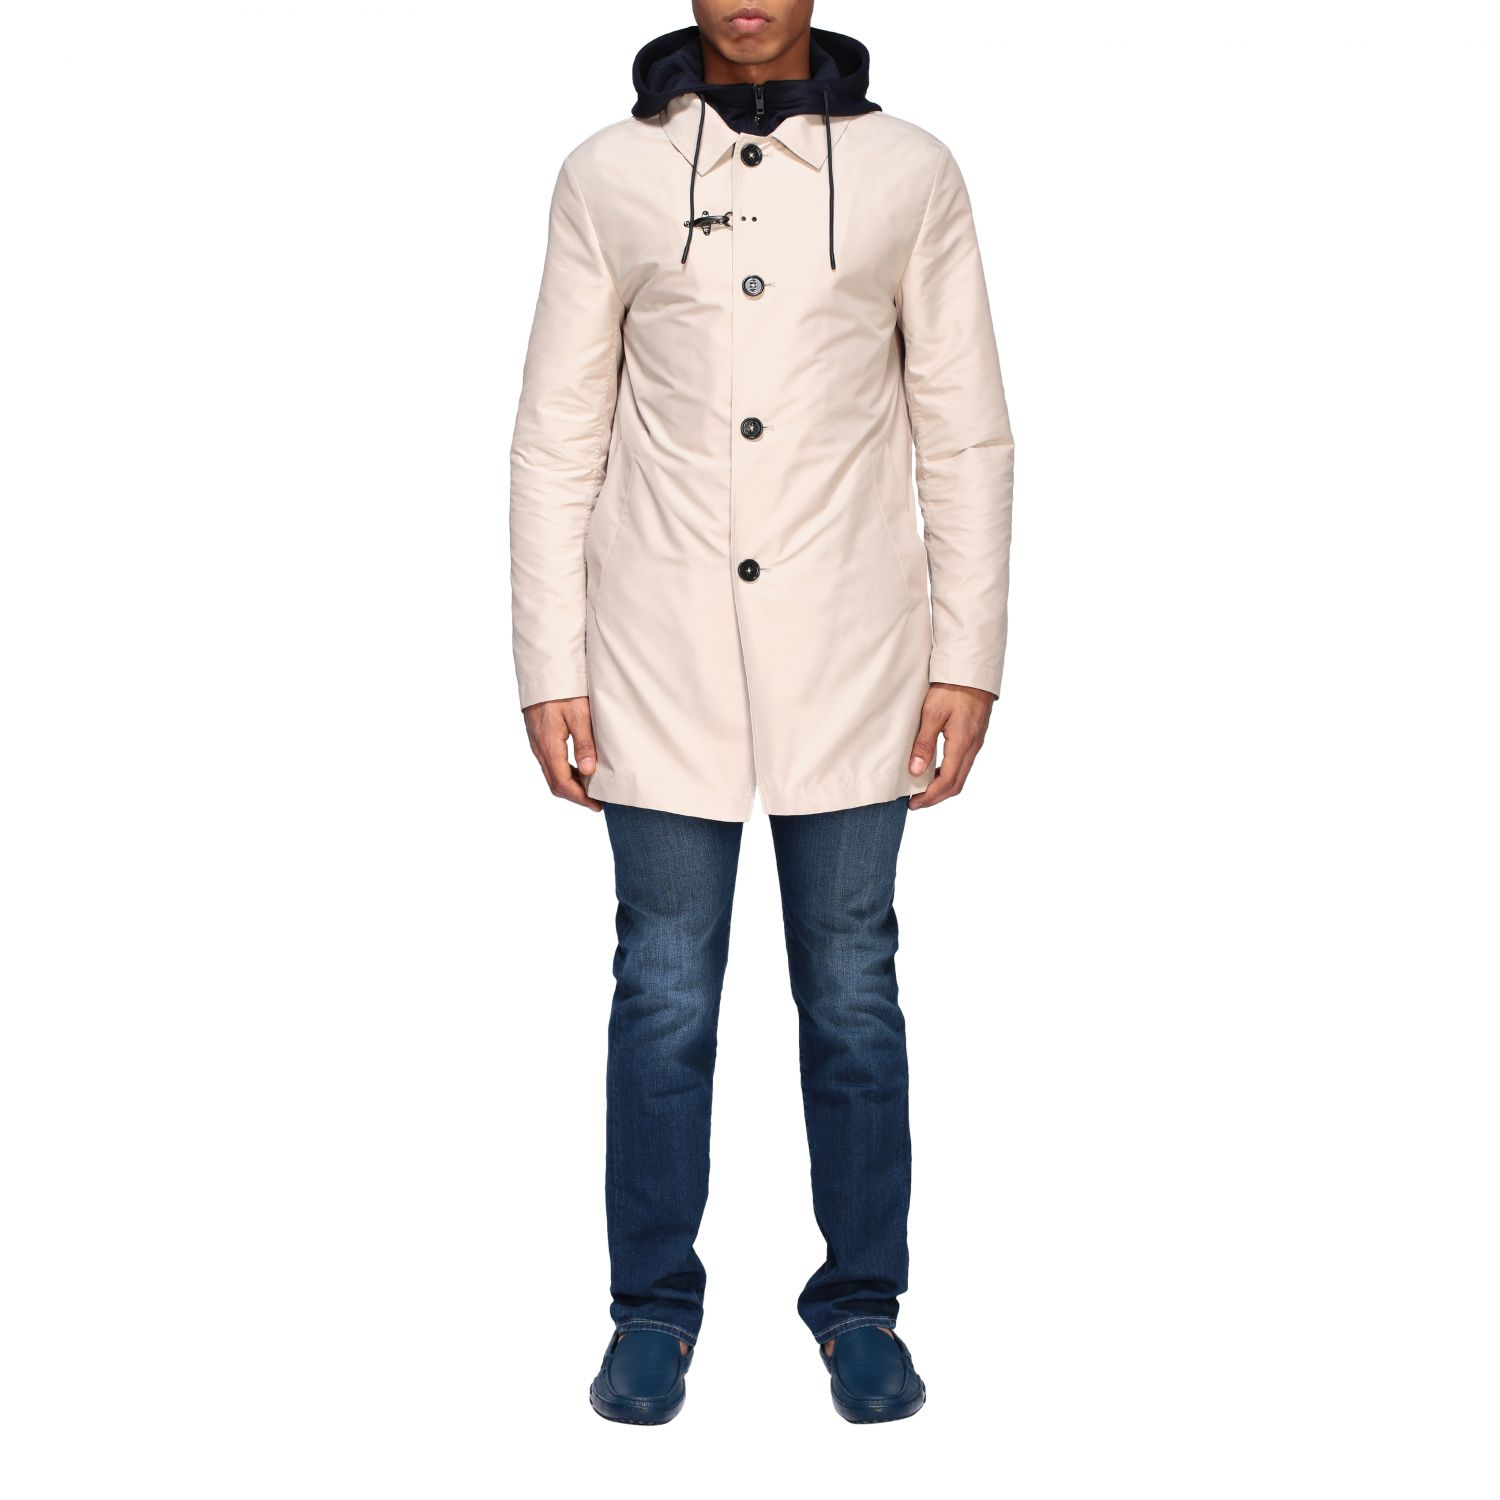 Trench Fay: Trench-coat droit à capuche Fay crème 1